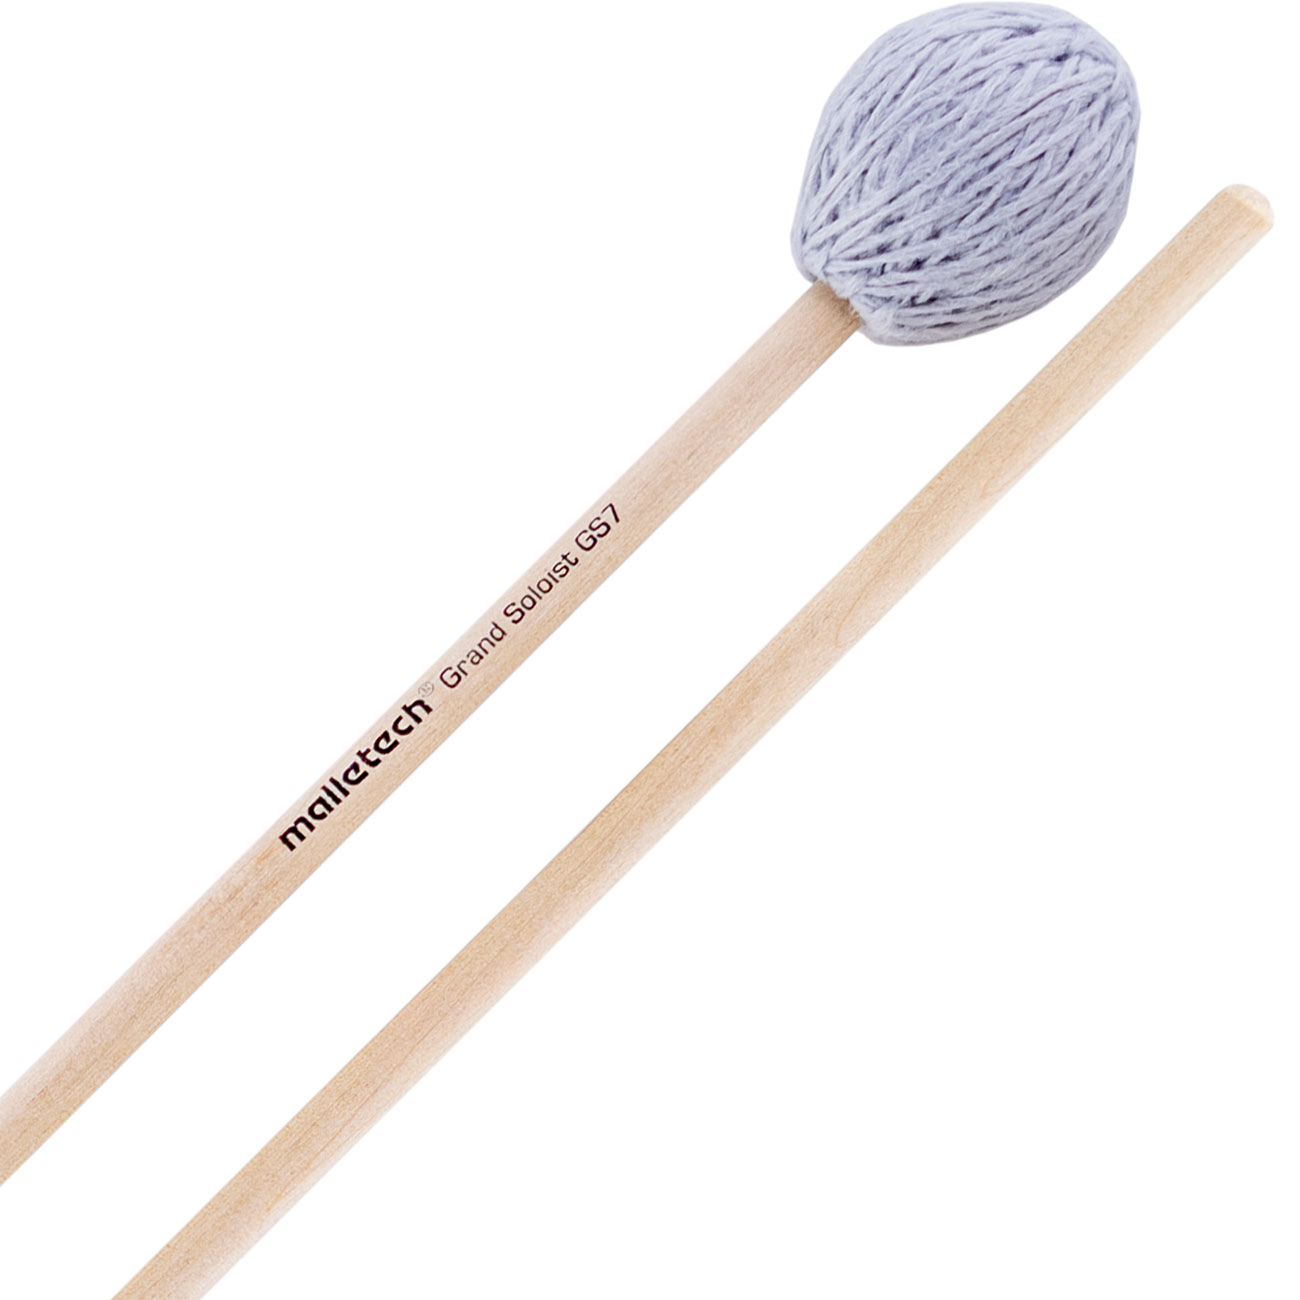 Malletech Gordon Stout Signature Medium Soft Marimba Mallets